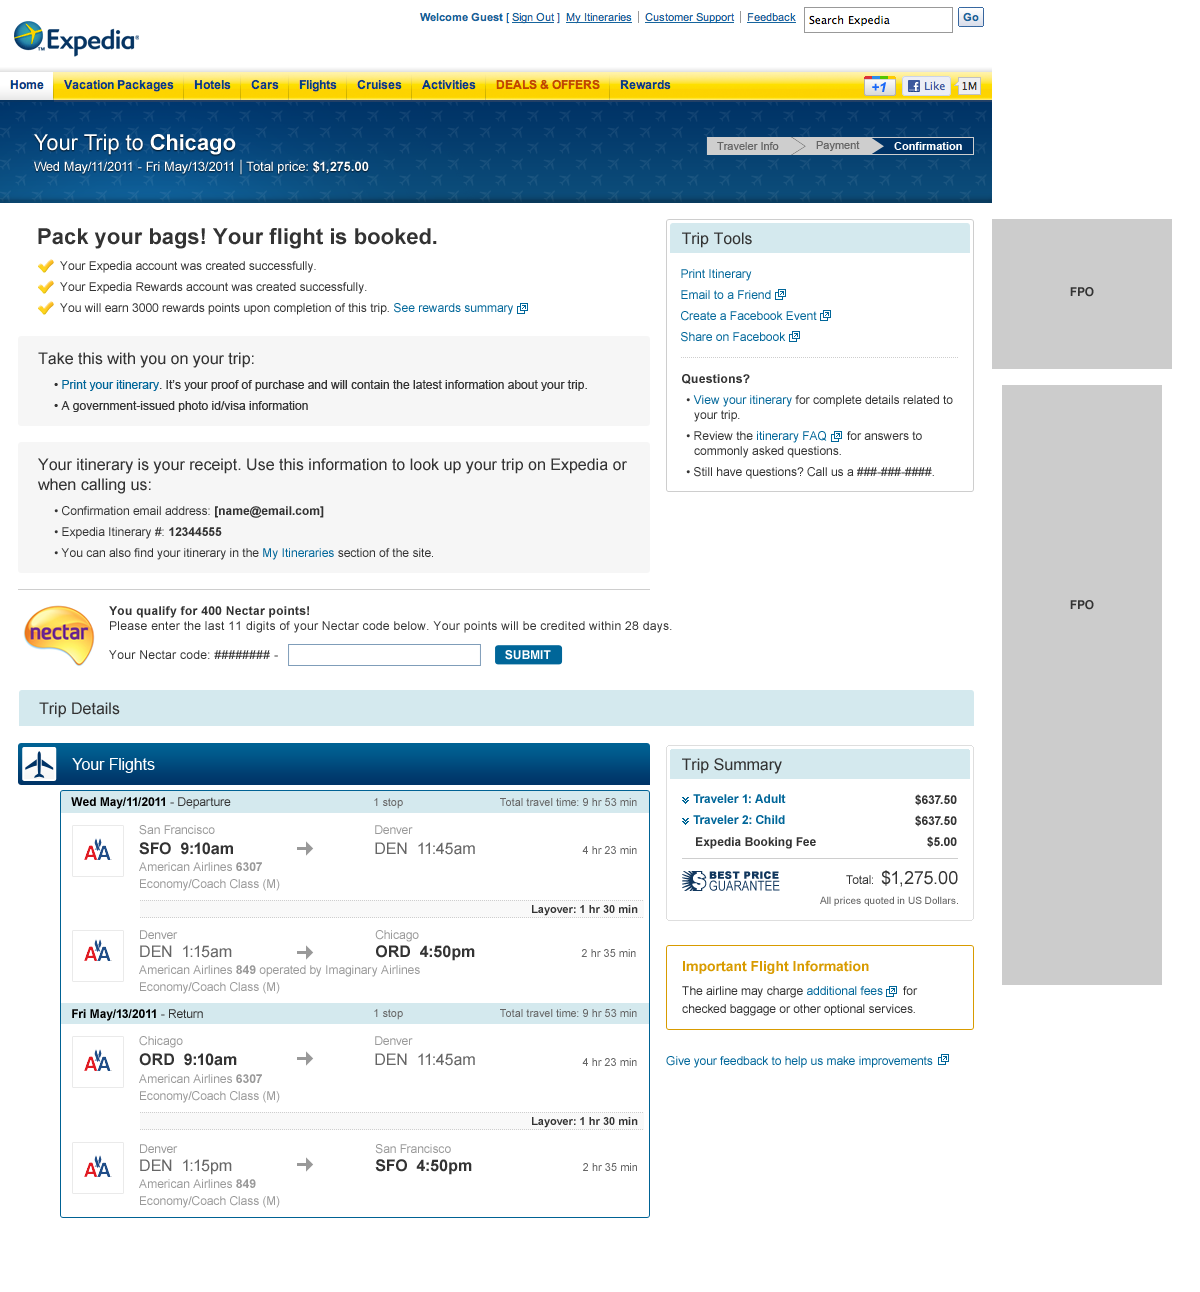 Expedia Travel Itinerary Number